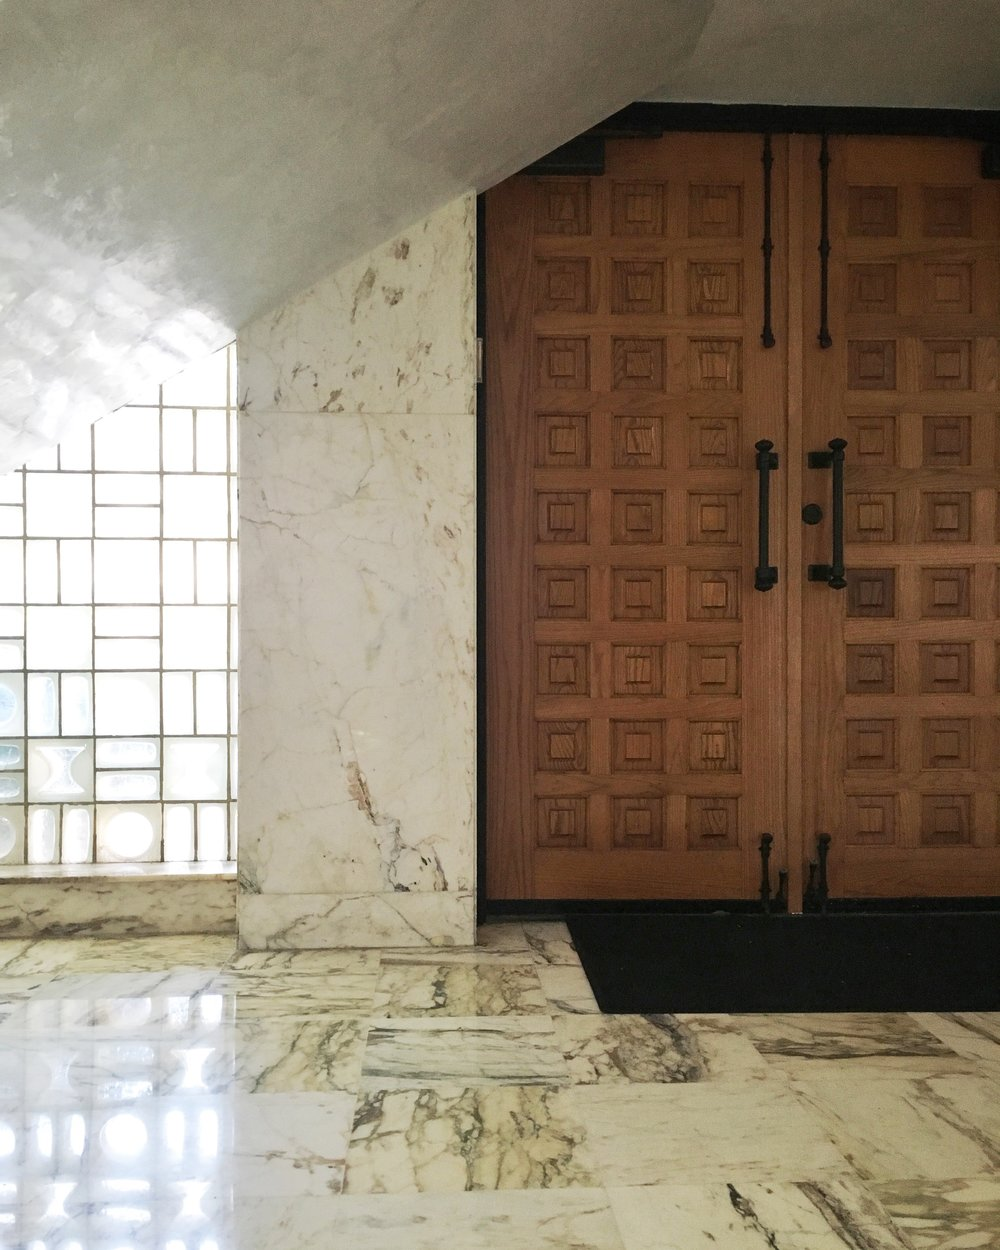 ELV's front door faces Washington Avenue and opens into the marbled foyer.